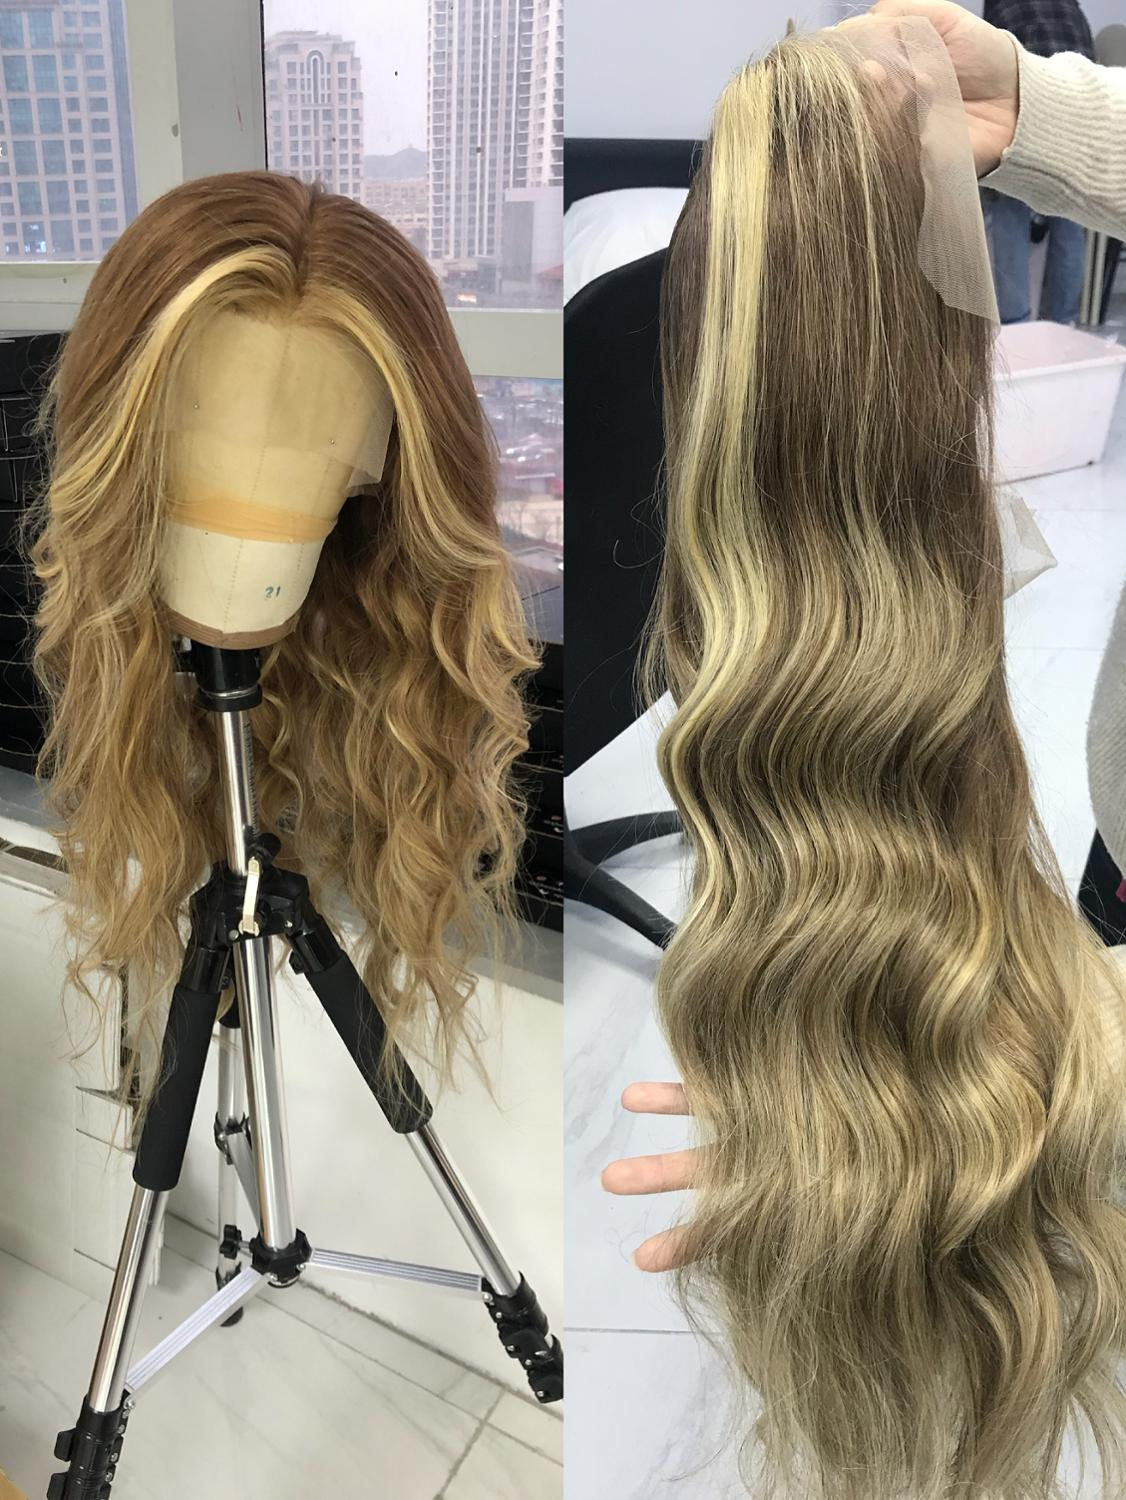 QueenKing Hair Front Lace Wig 180% Density Cami Color Balayage Ombre Wigs T7/7/24 European Remy Hair Free Shipping Overnight